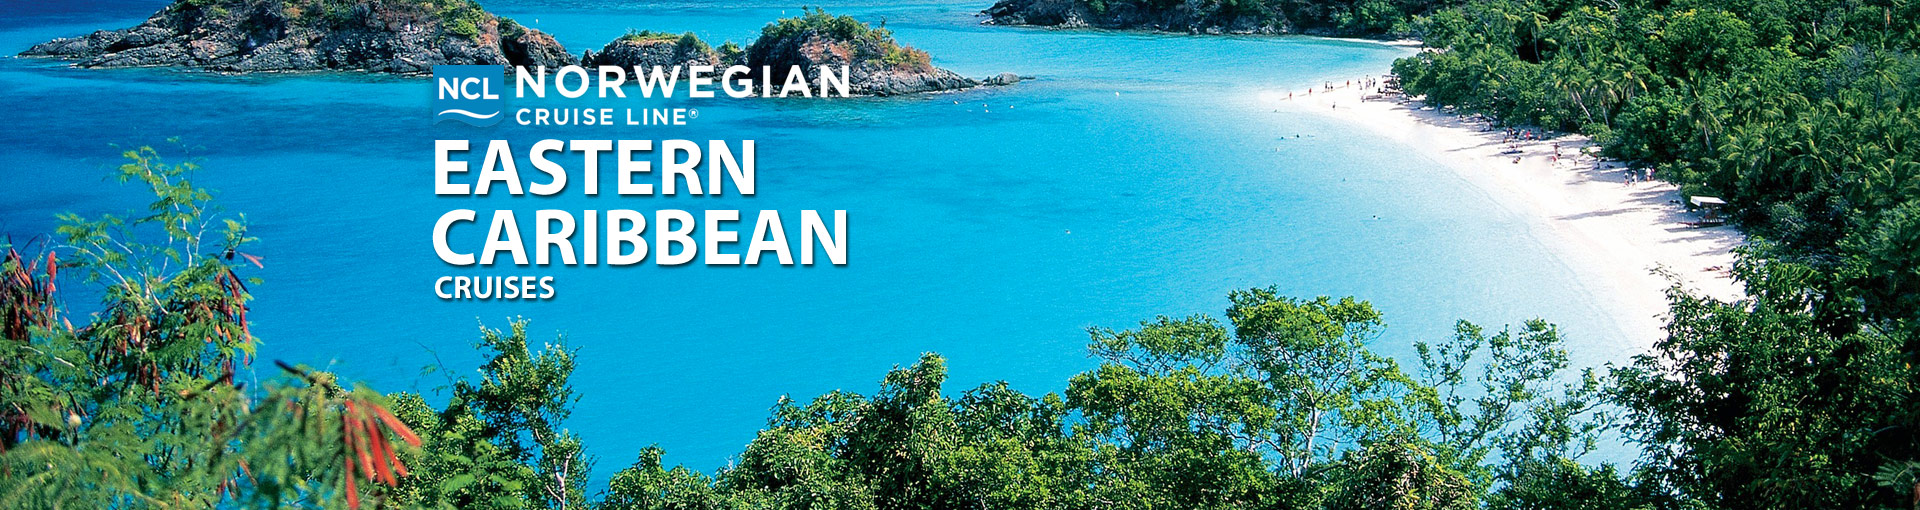 Norwegian Cruise Line Eastern Caribbean Cruises